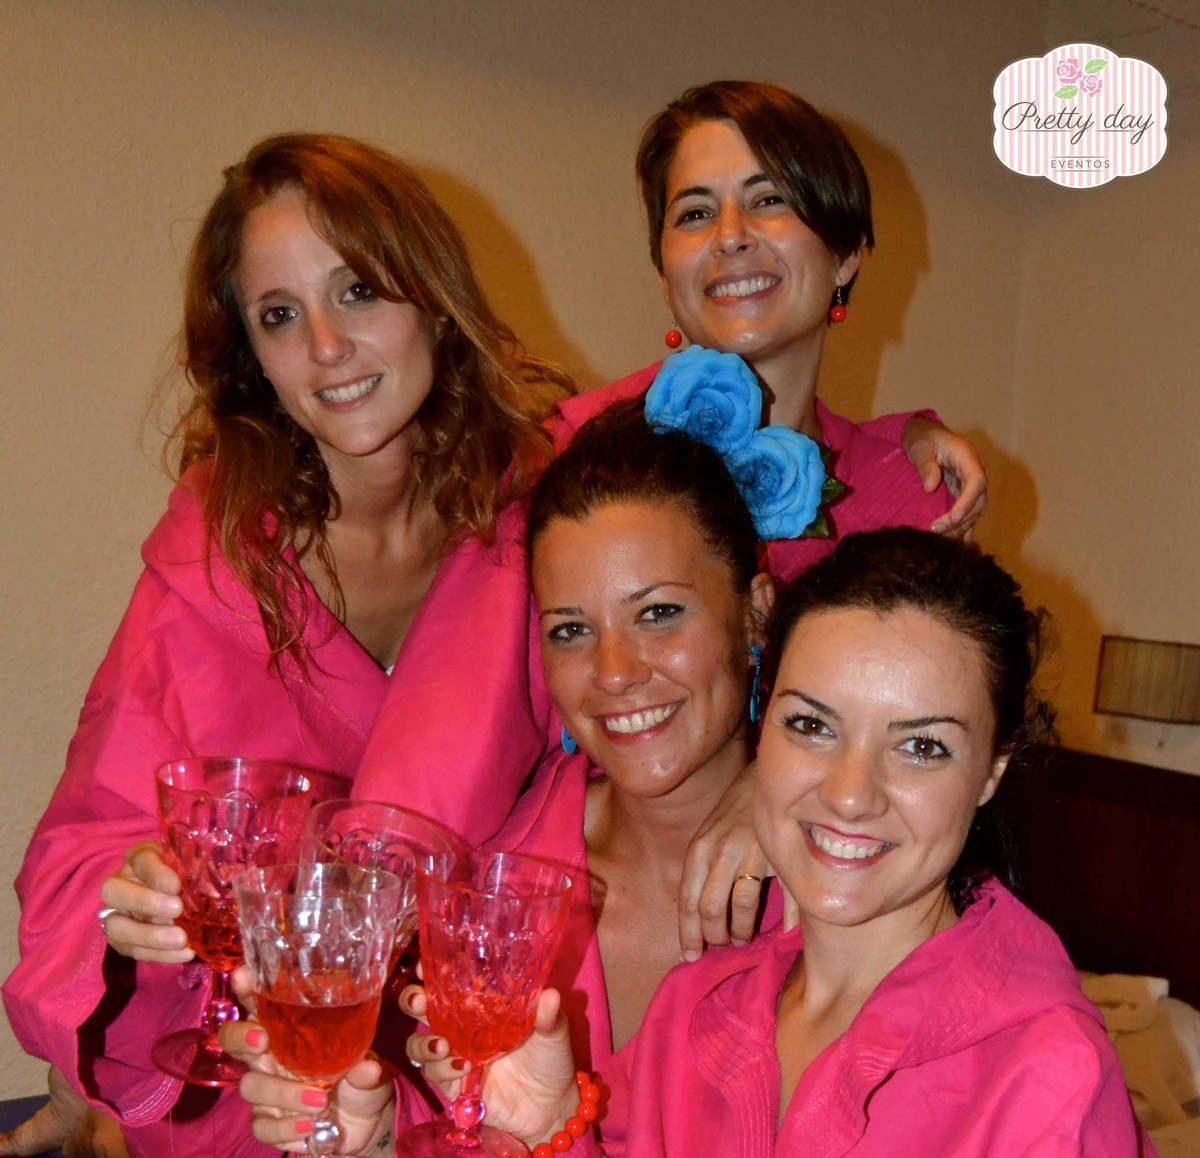 Beauty Party Málaga